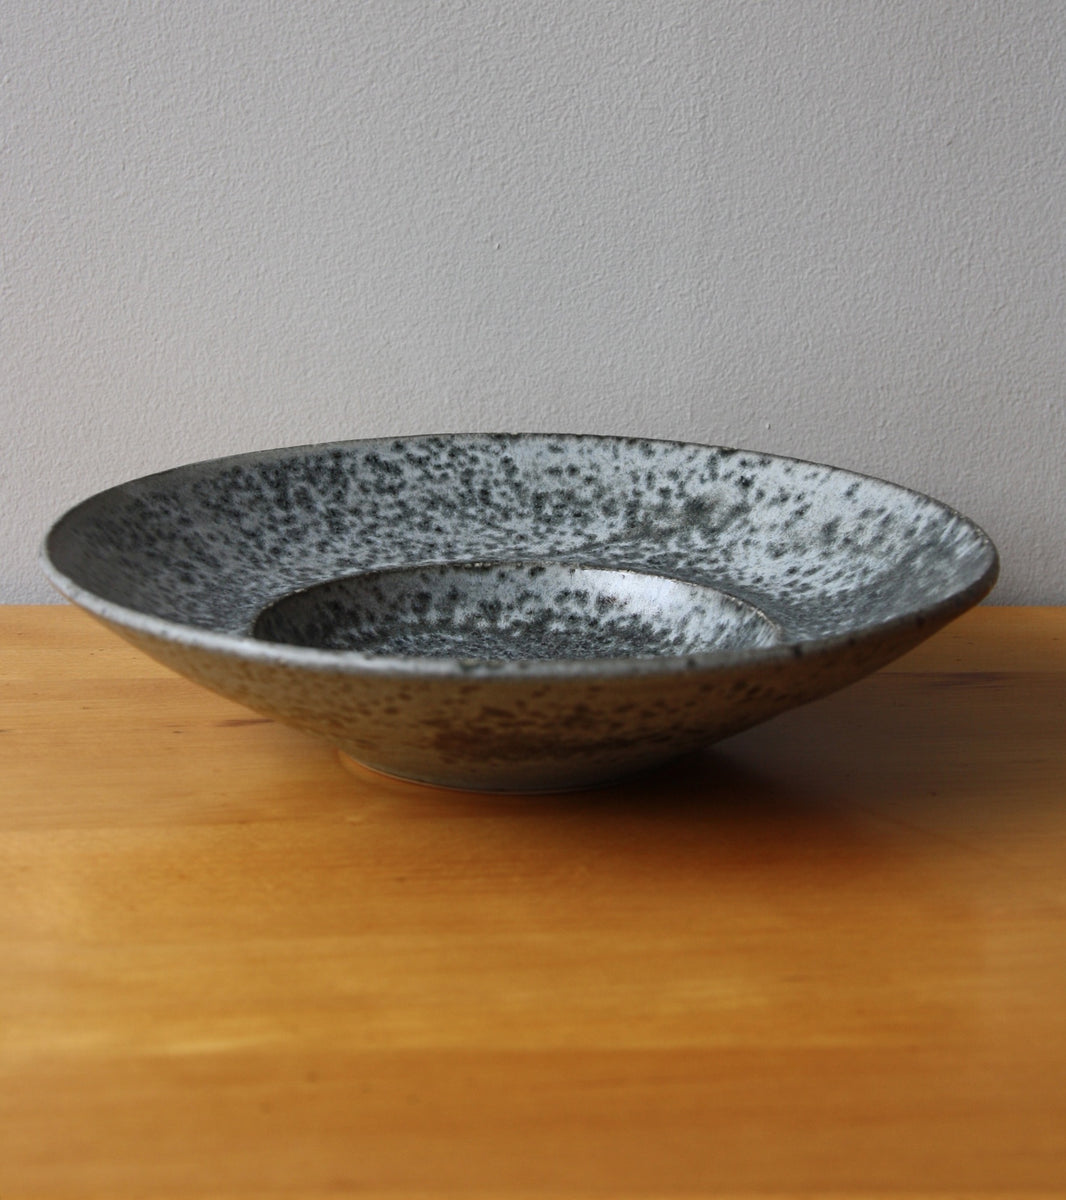 Large Flat Out Bowl 11Grey Glaze Kasper Würtz - Image 2